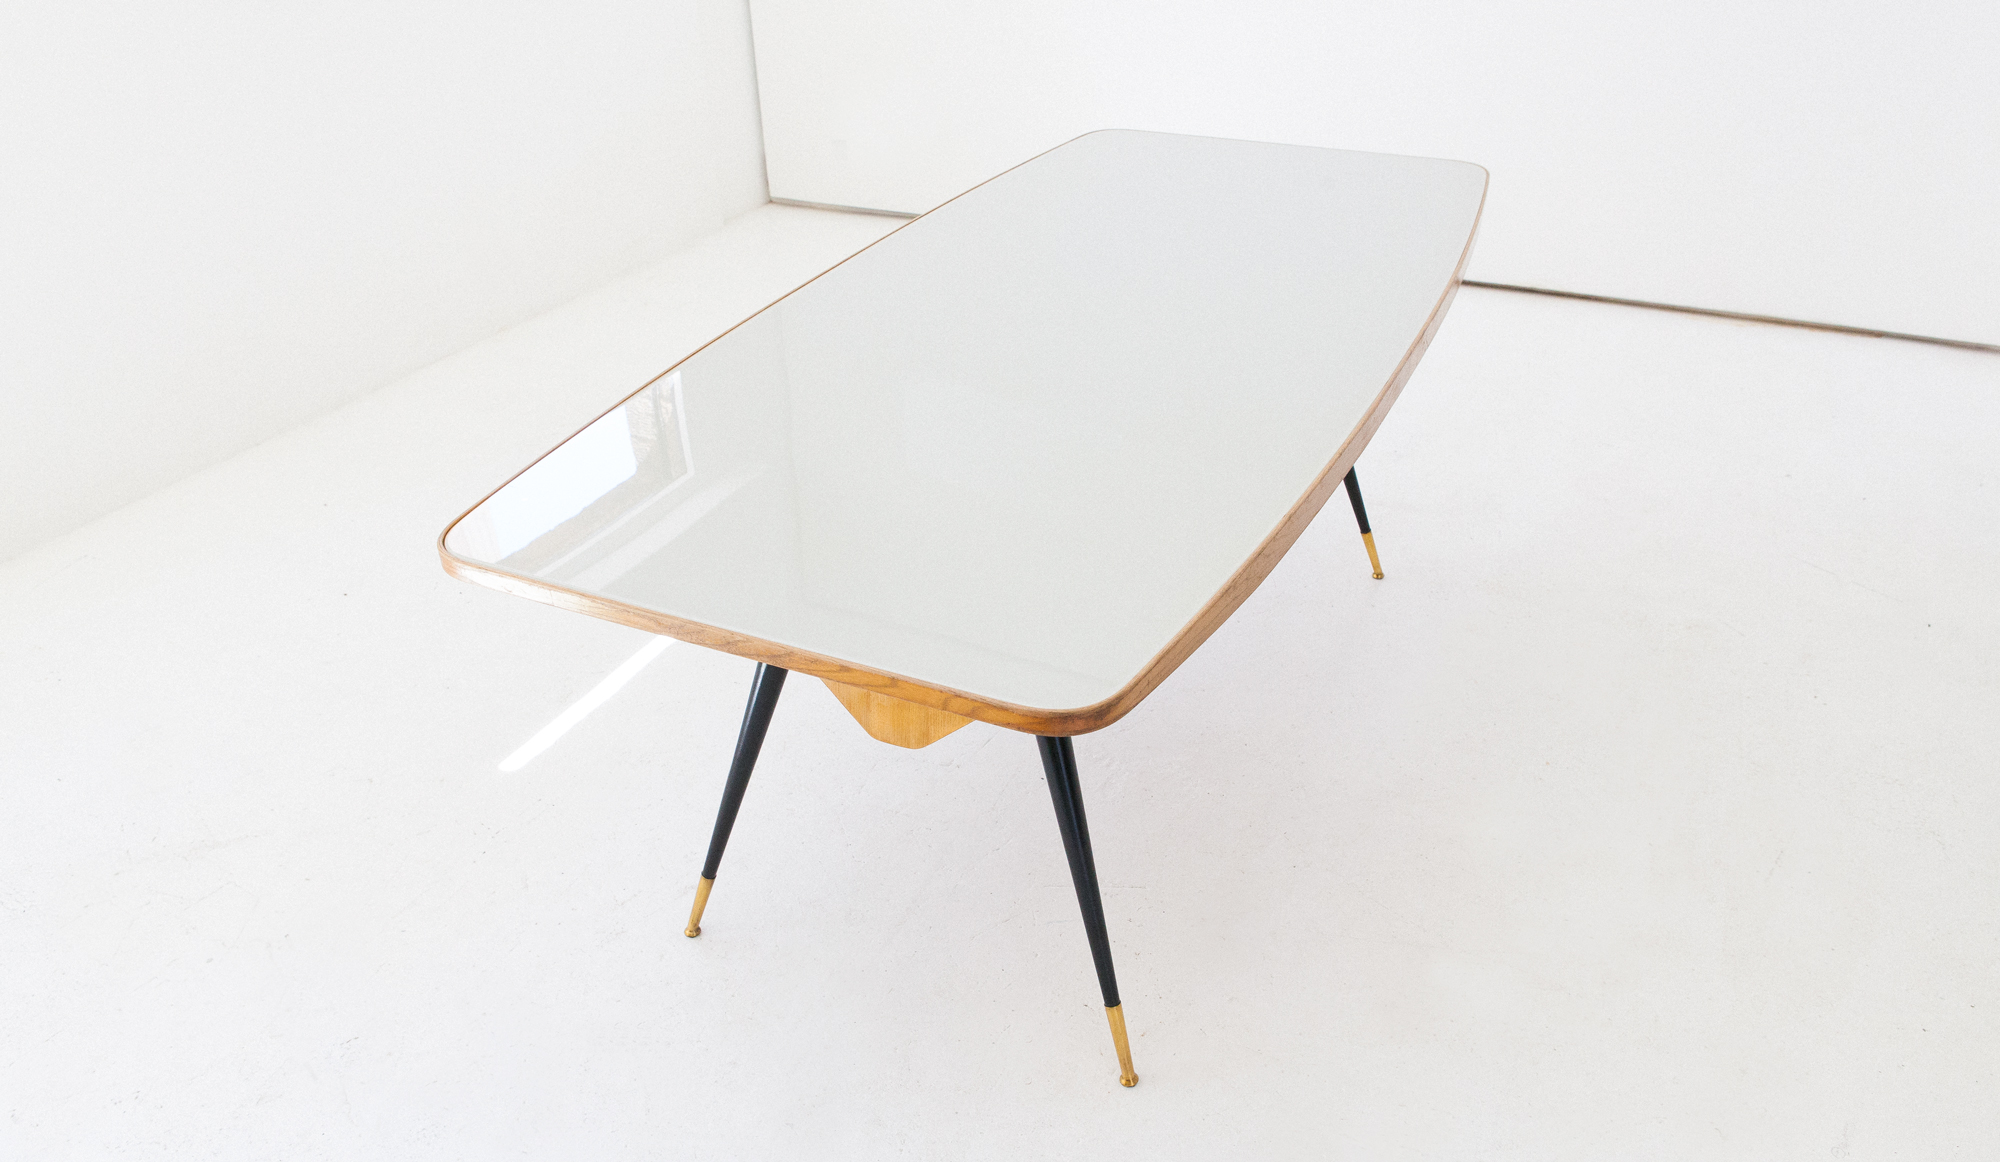 table-68.1